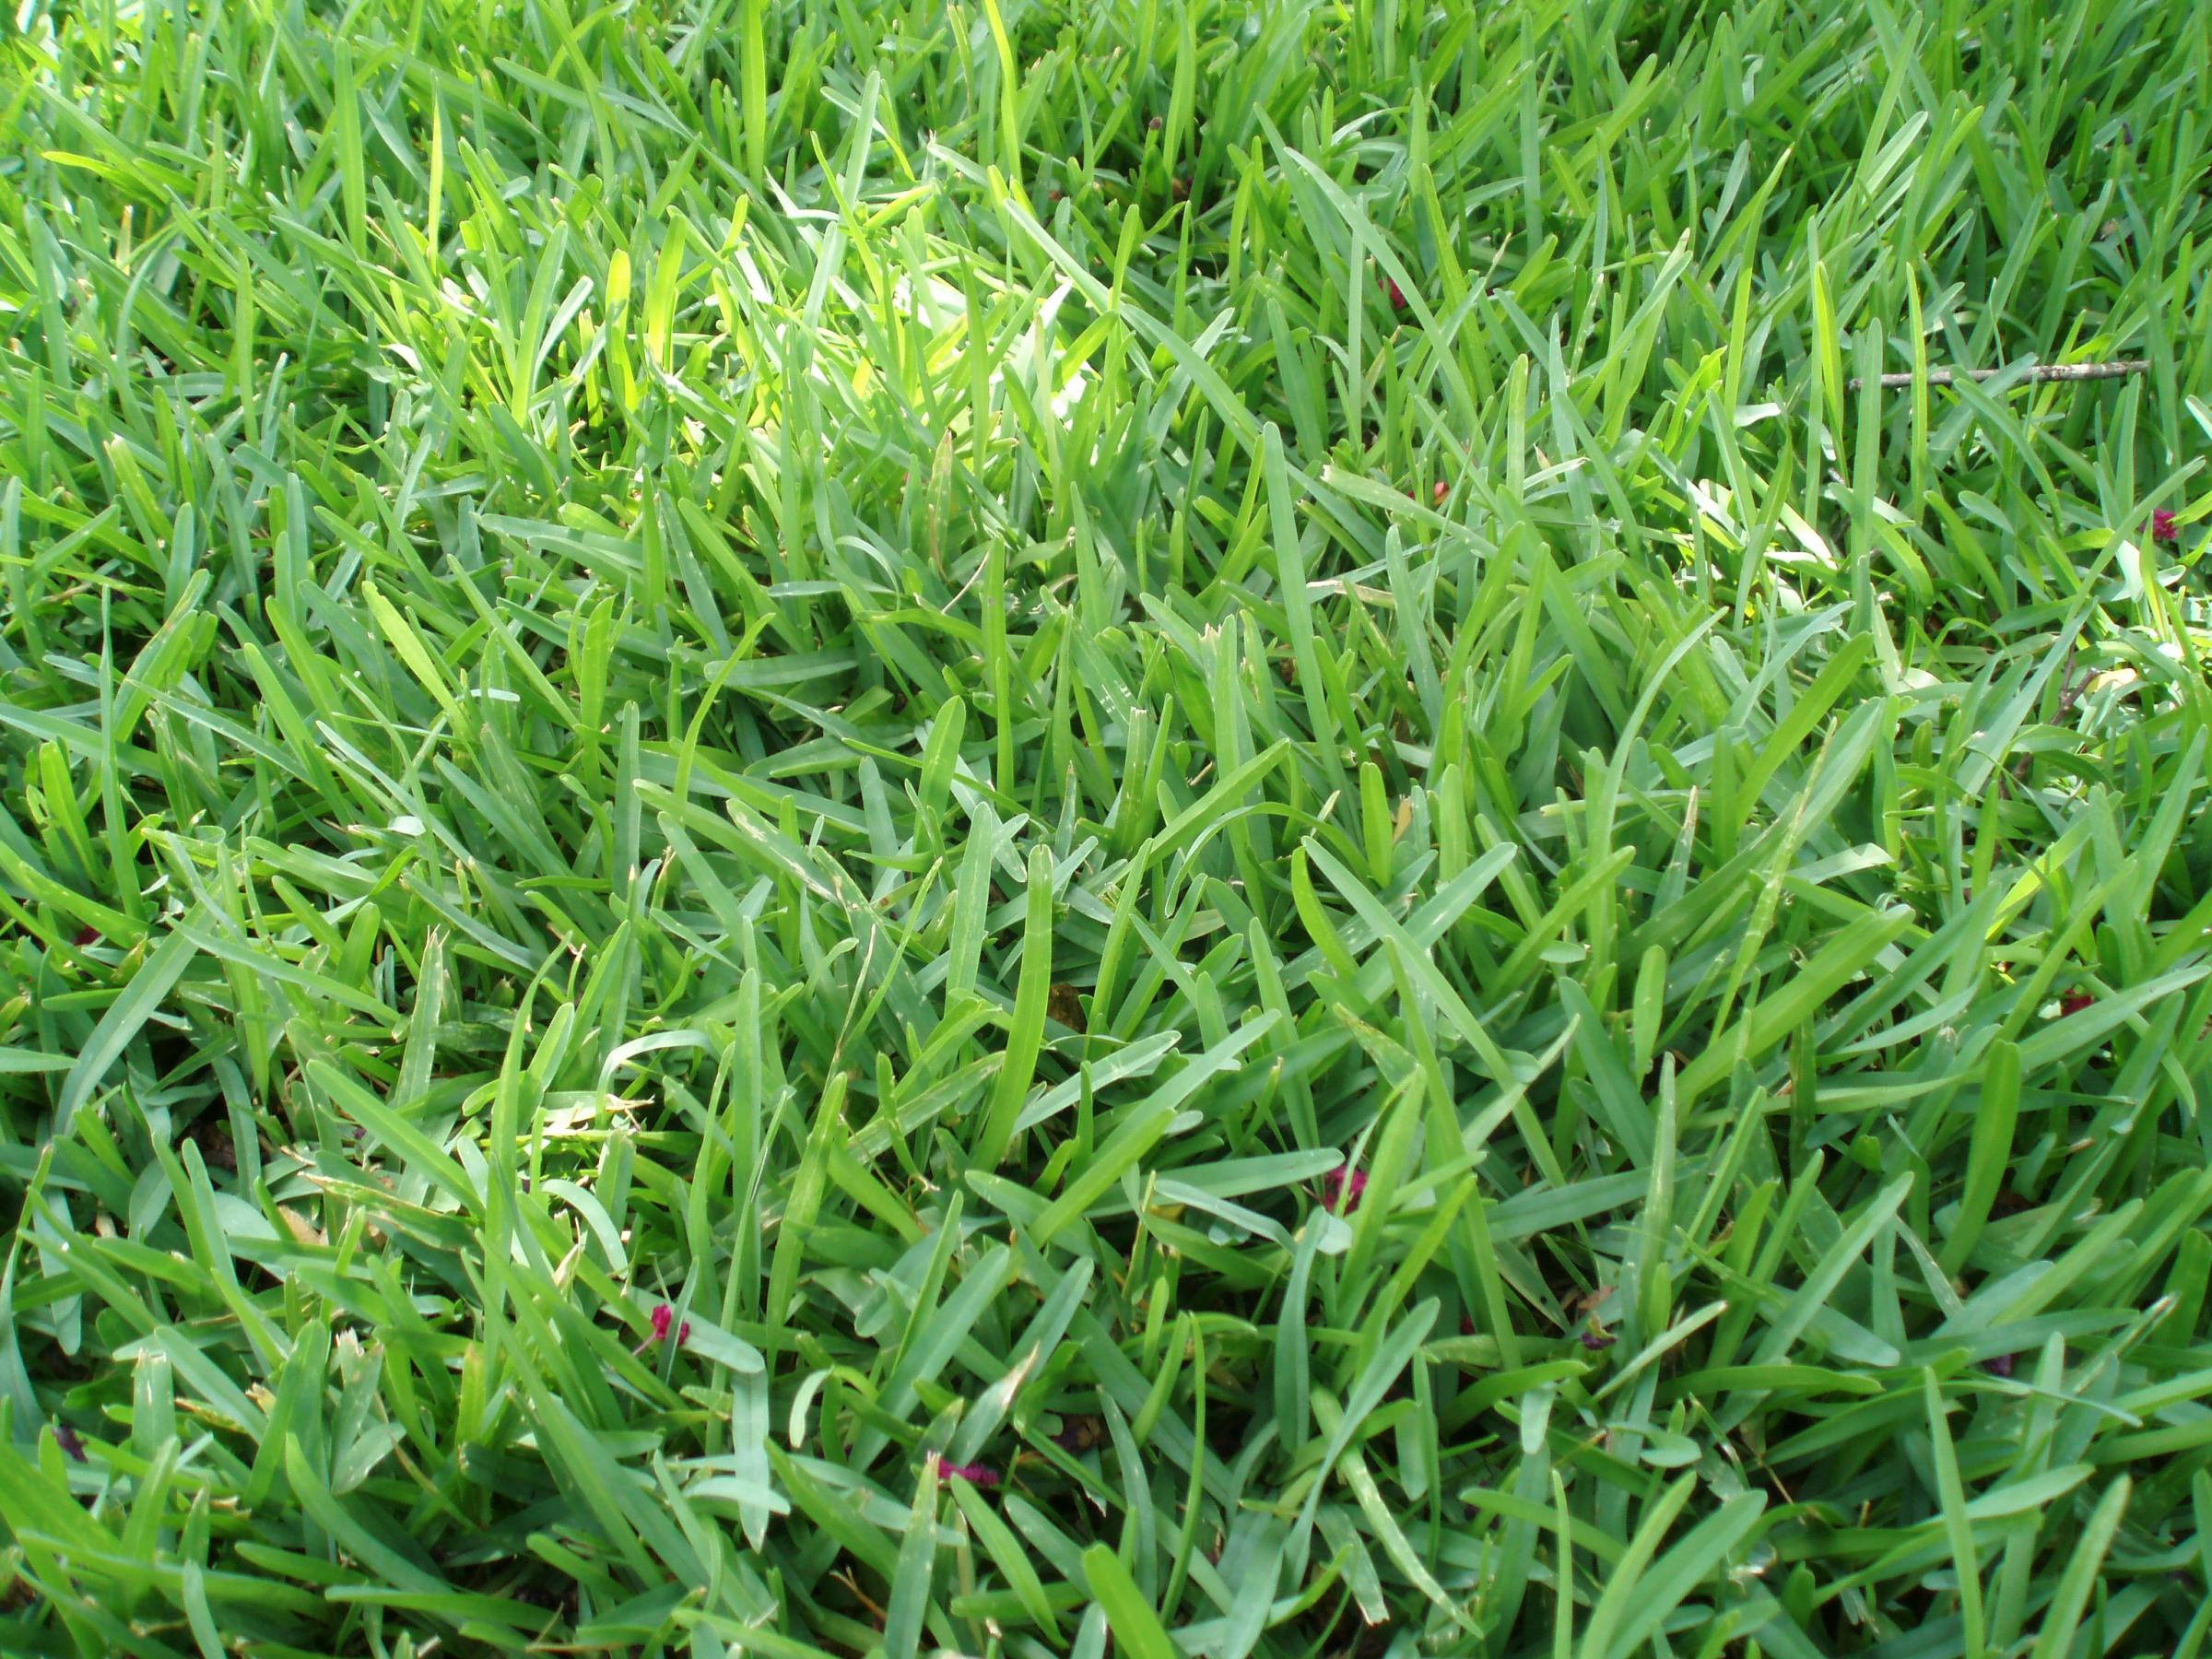 Austin water offers landscaping rebates kut for Landscaping grasses varieties